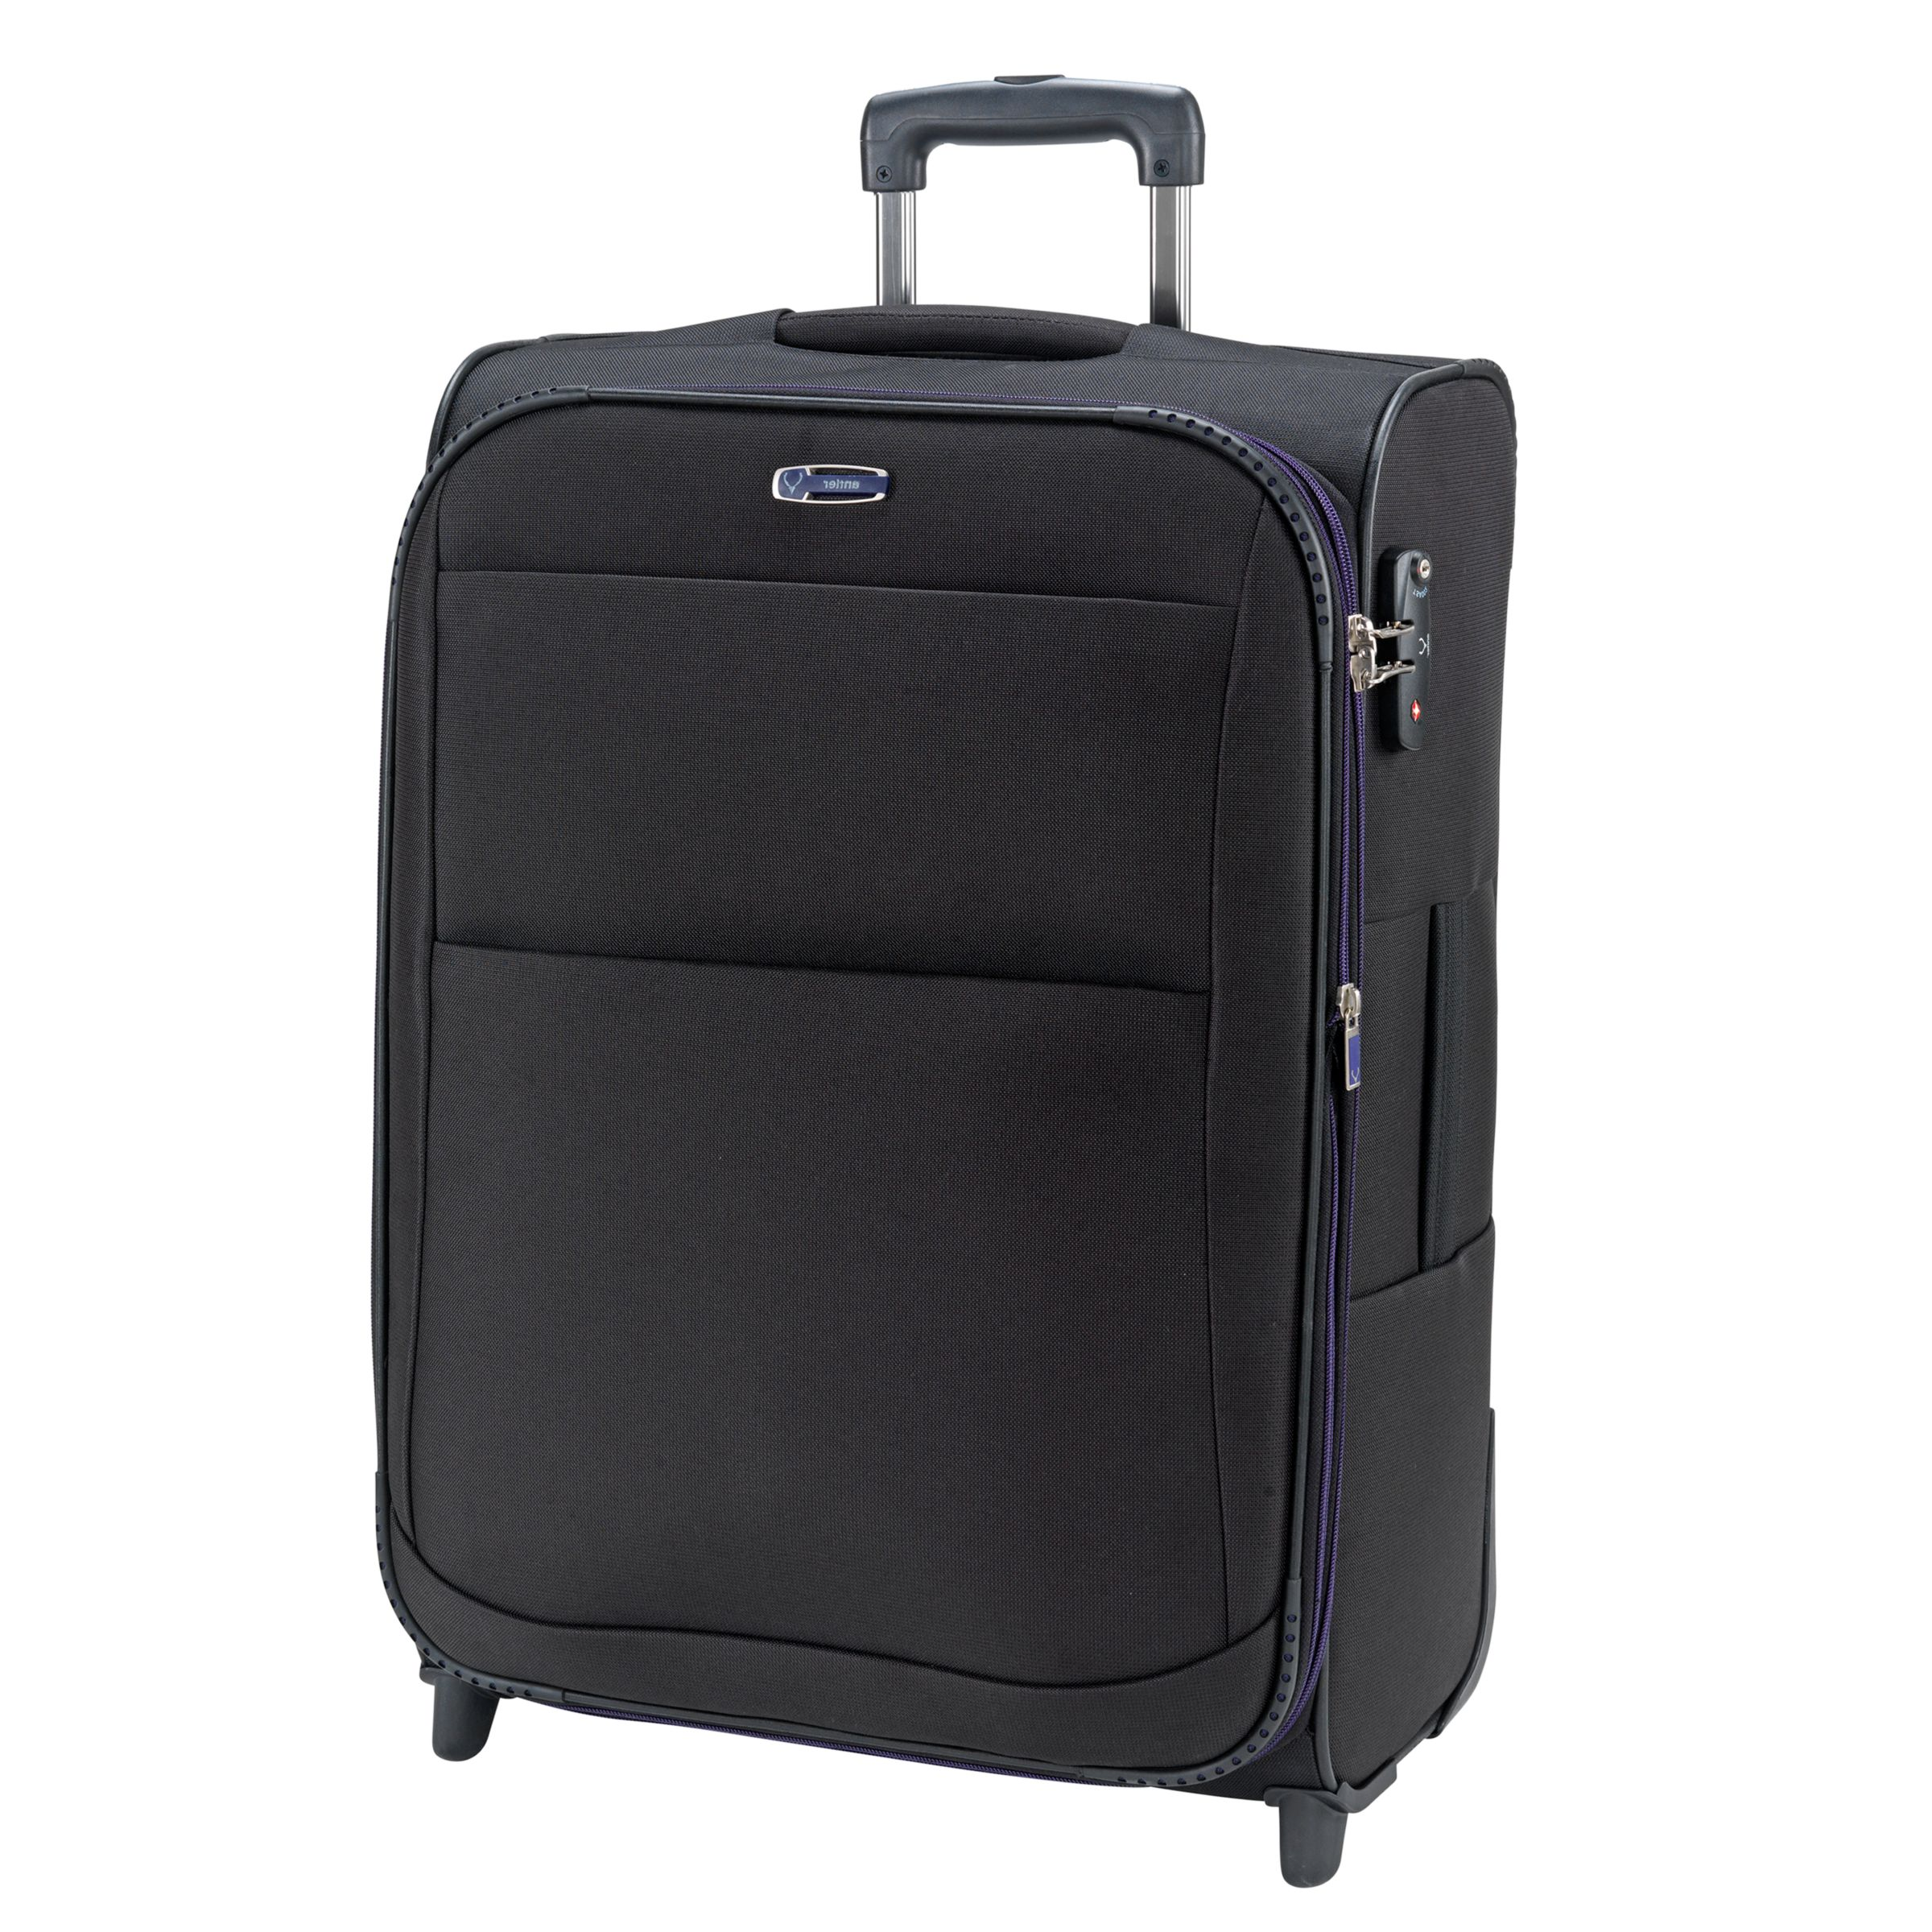 Antler Tourlite II 2-Wheel Suitcase, Black/Plum